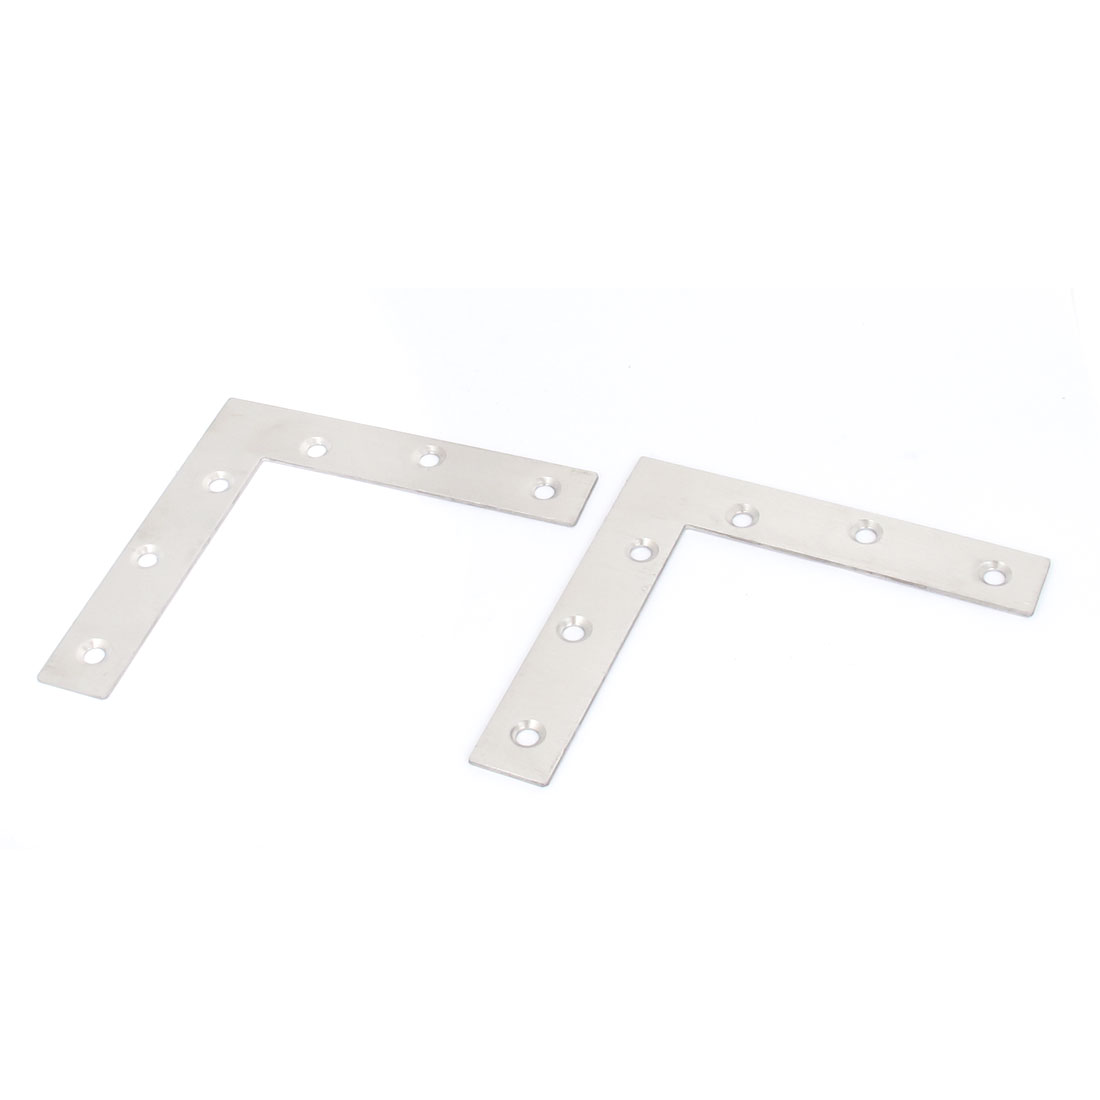 120mmx120mm Flat L Shape Corner Brace Repair Plate Right Angle Brackets 2pcs